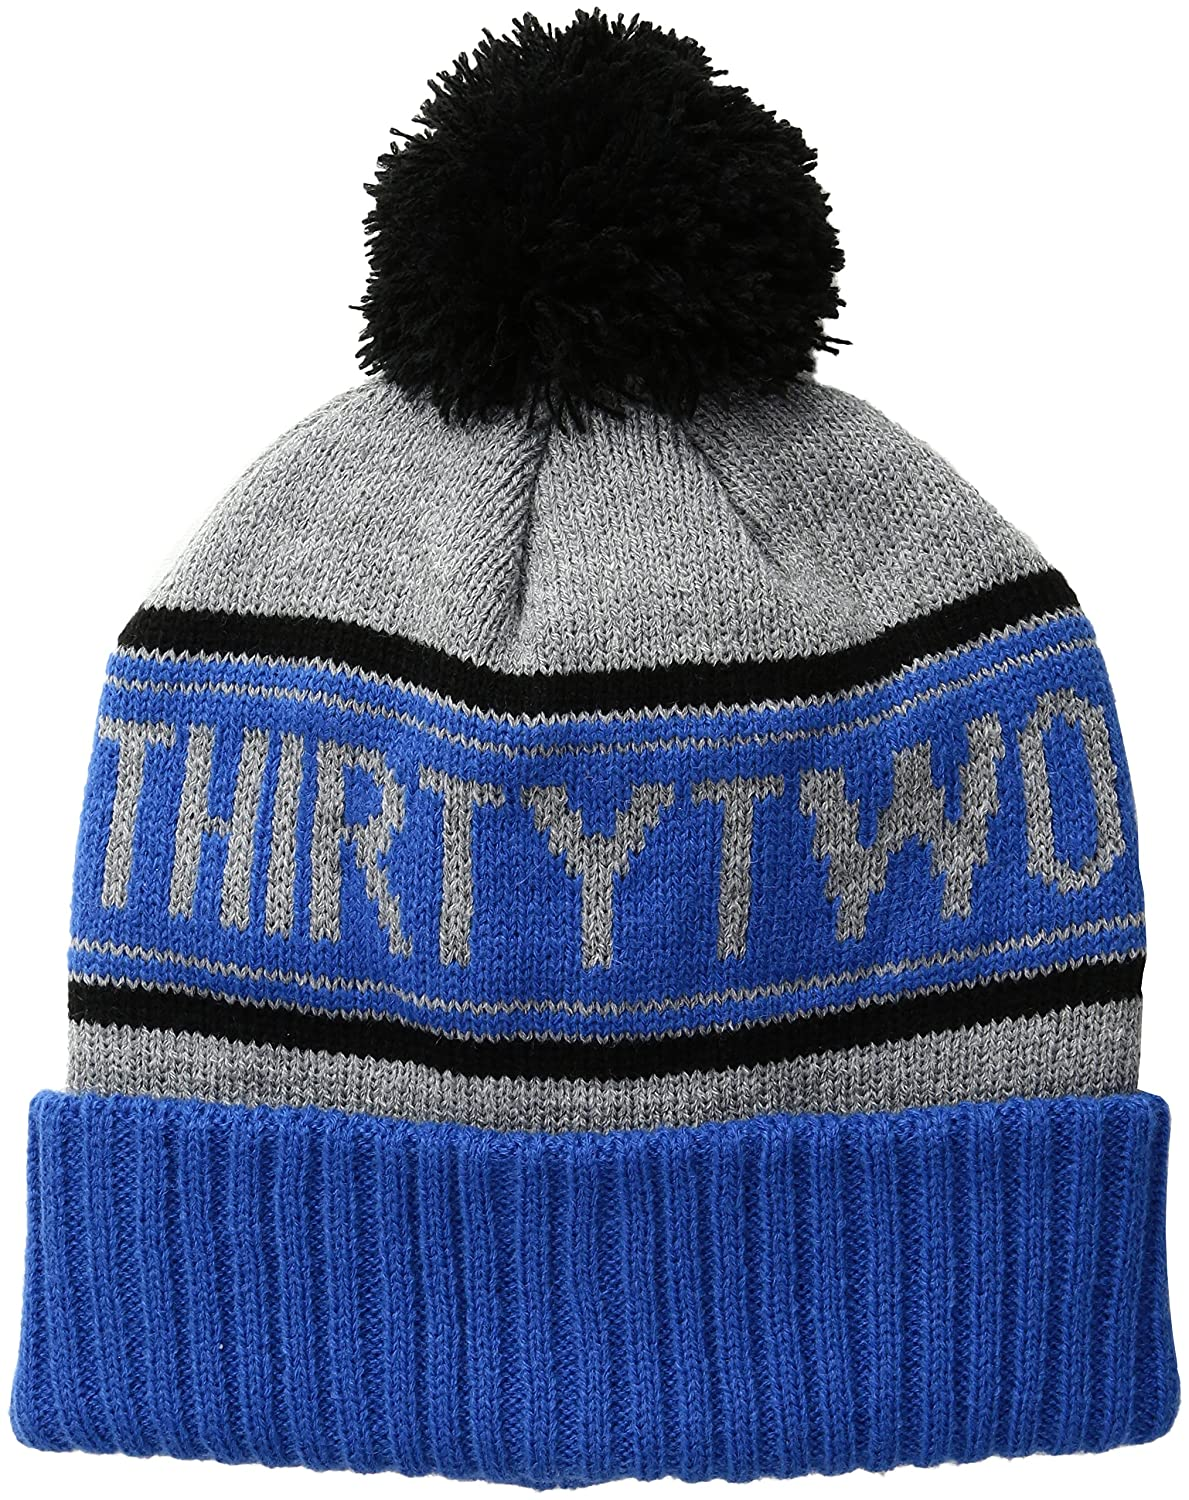 a7a9cd09d6fef1 Amazon.com: ThirtyTwo Pom Snowboard Beanie, Blue, One Size: Clothing